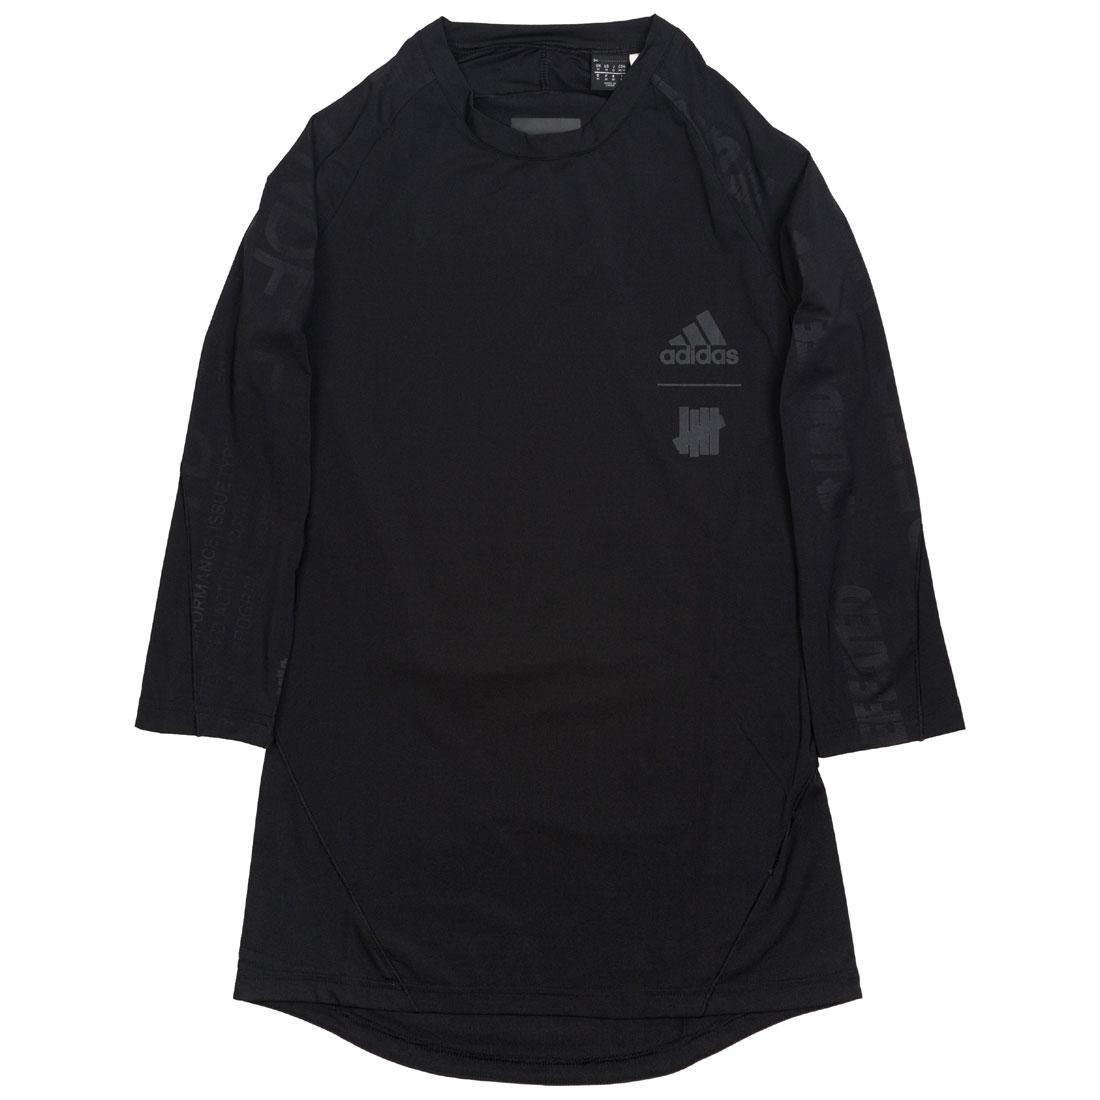 Adidas x Undefeated Men Alphaskin Tech 3/4 Tee (black)